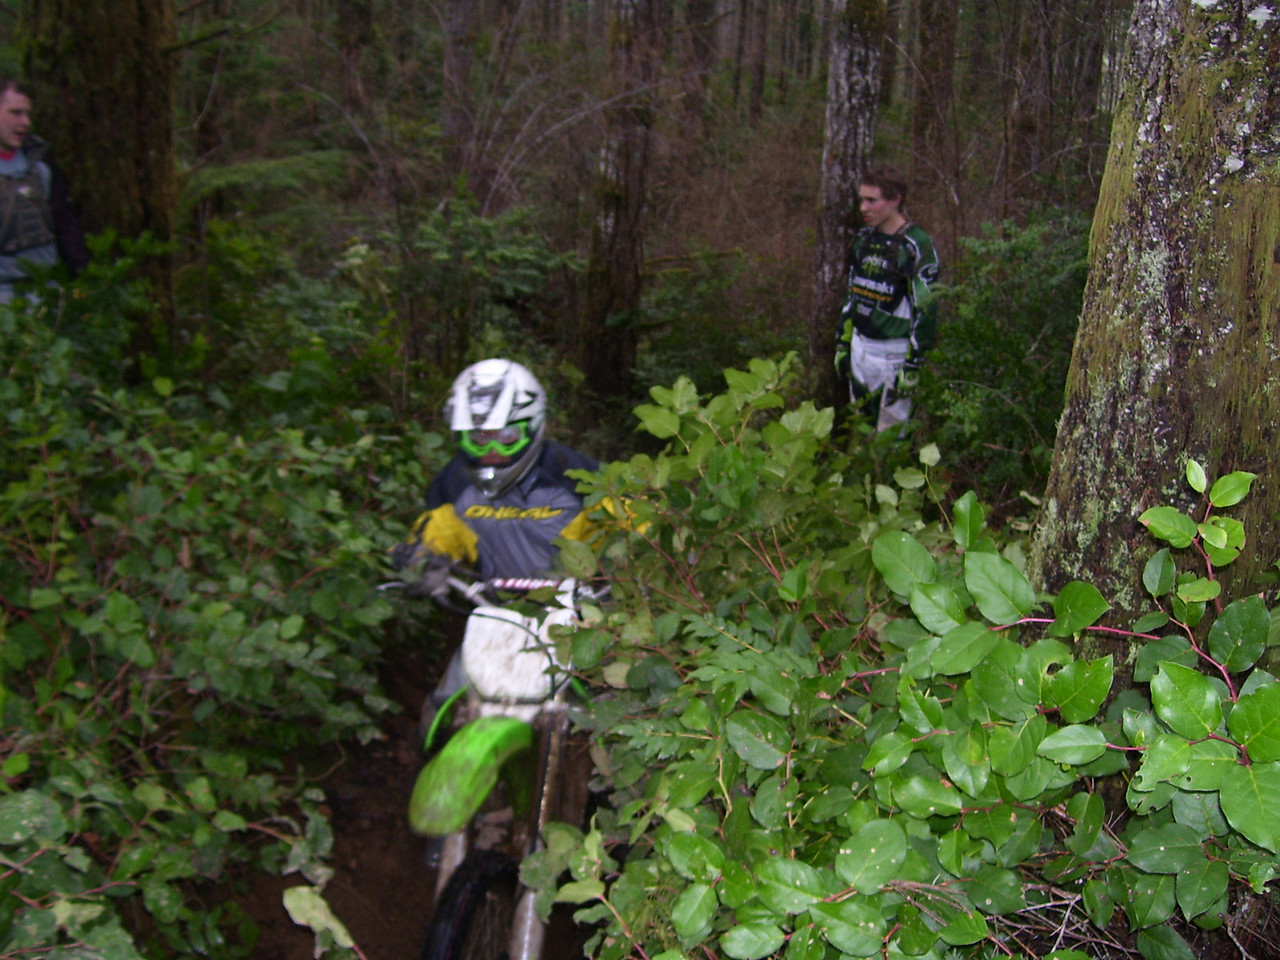 Kelly again on his girl friends new KX 250F